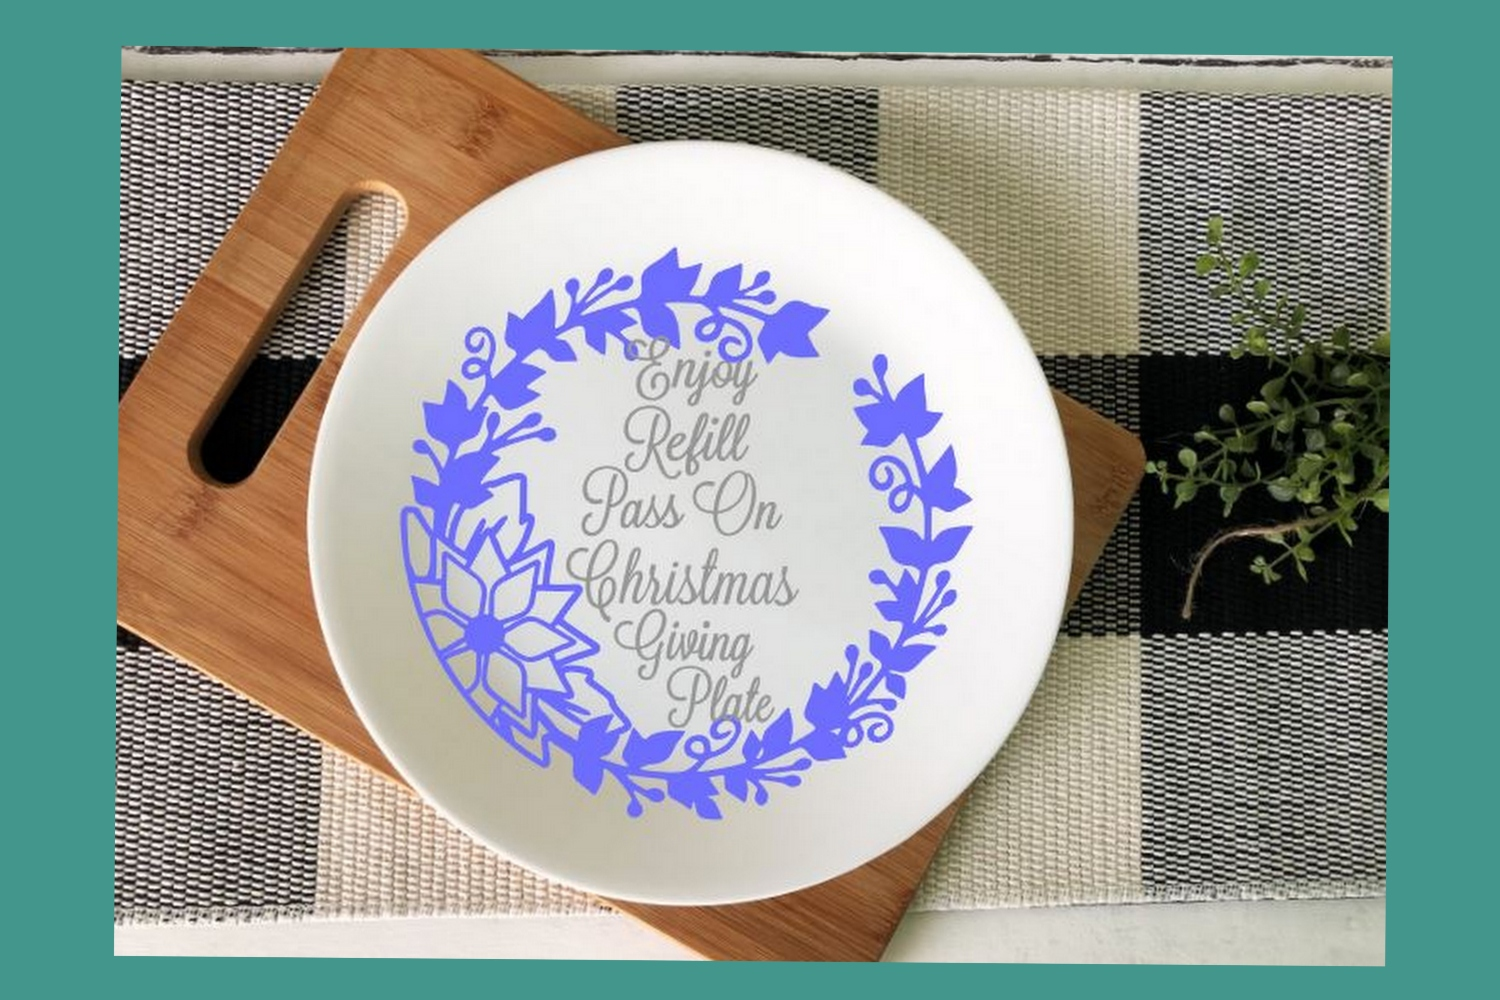 SVG Cut File Christmas Giving Plate Design #06 example image 4